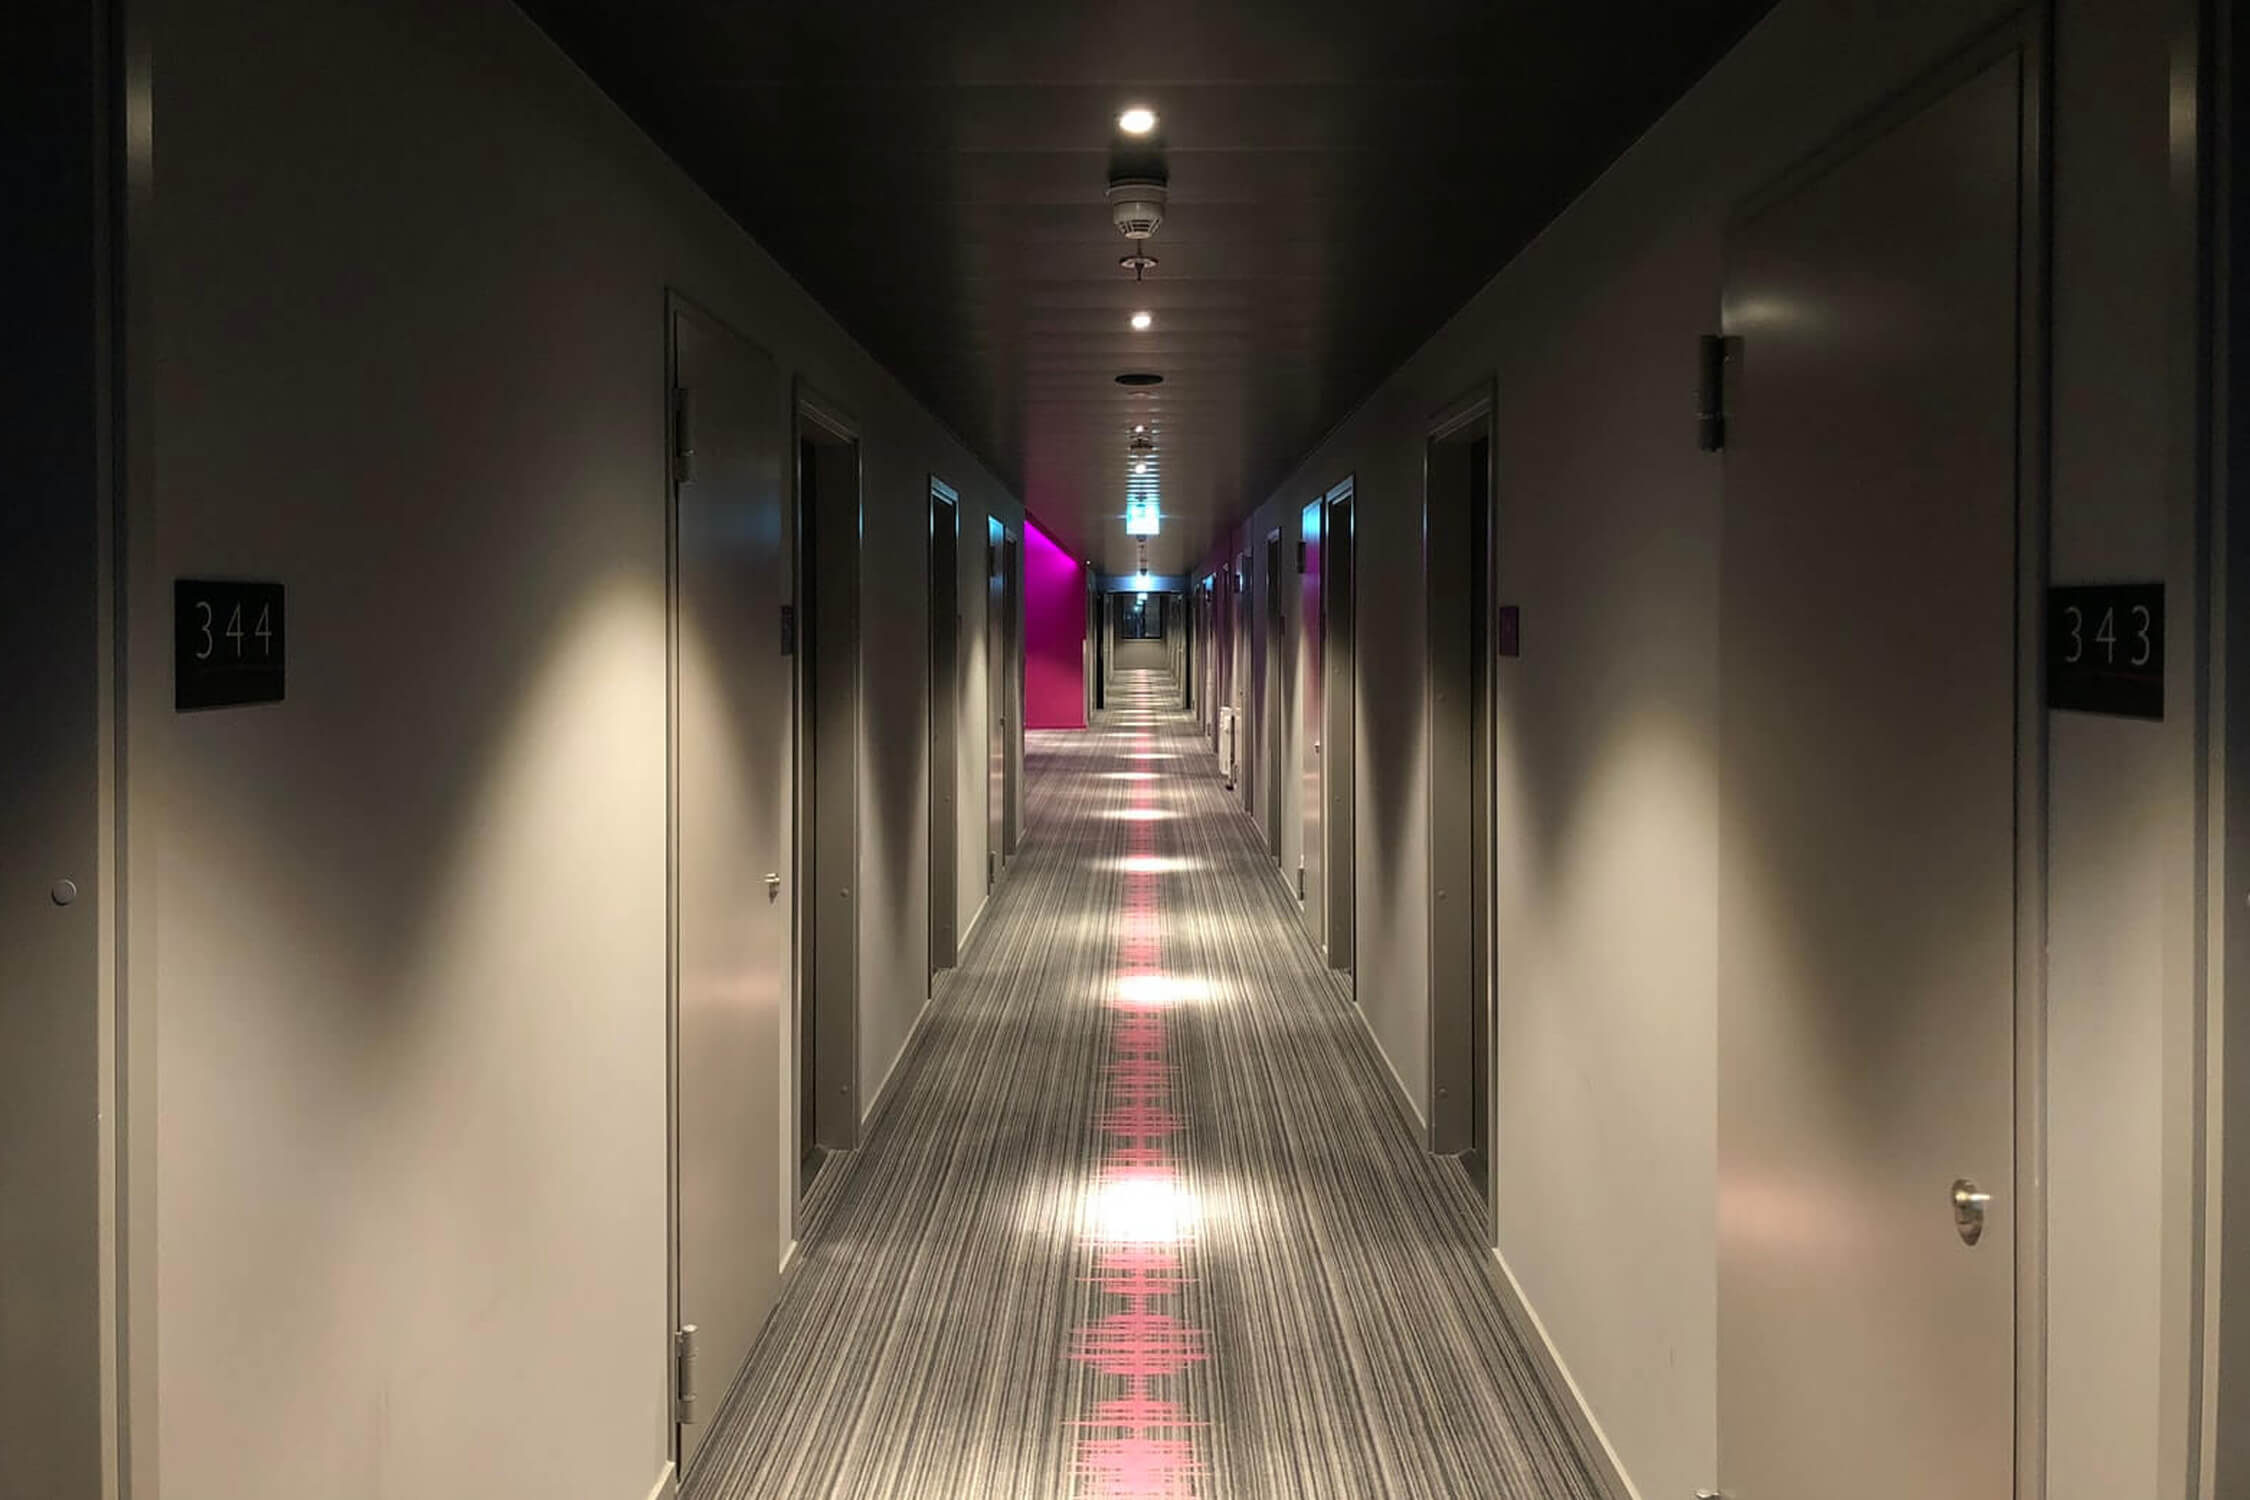 commercial floor cleaning company hotels